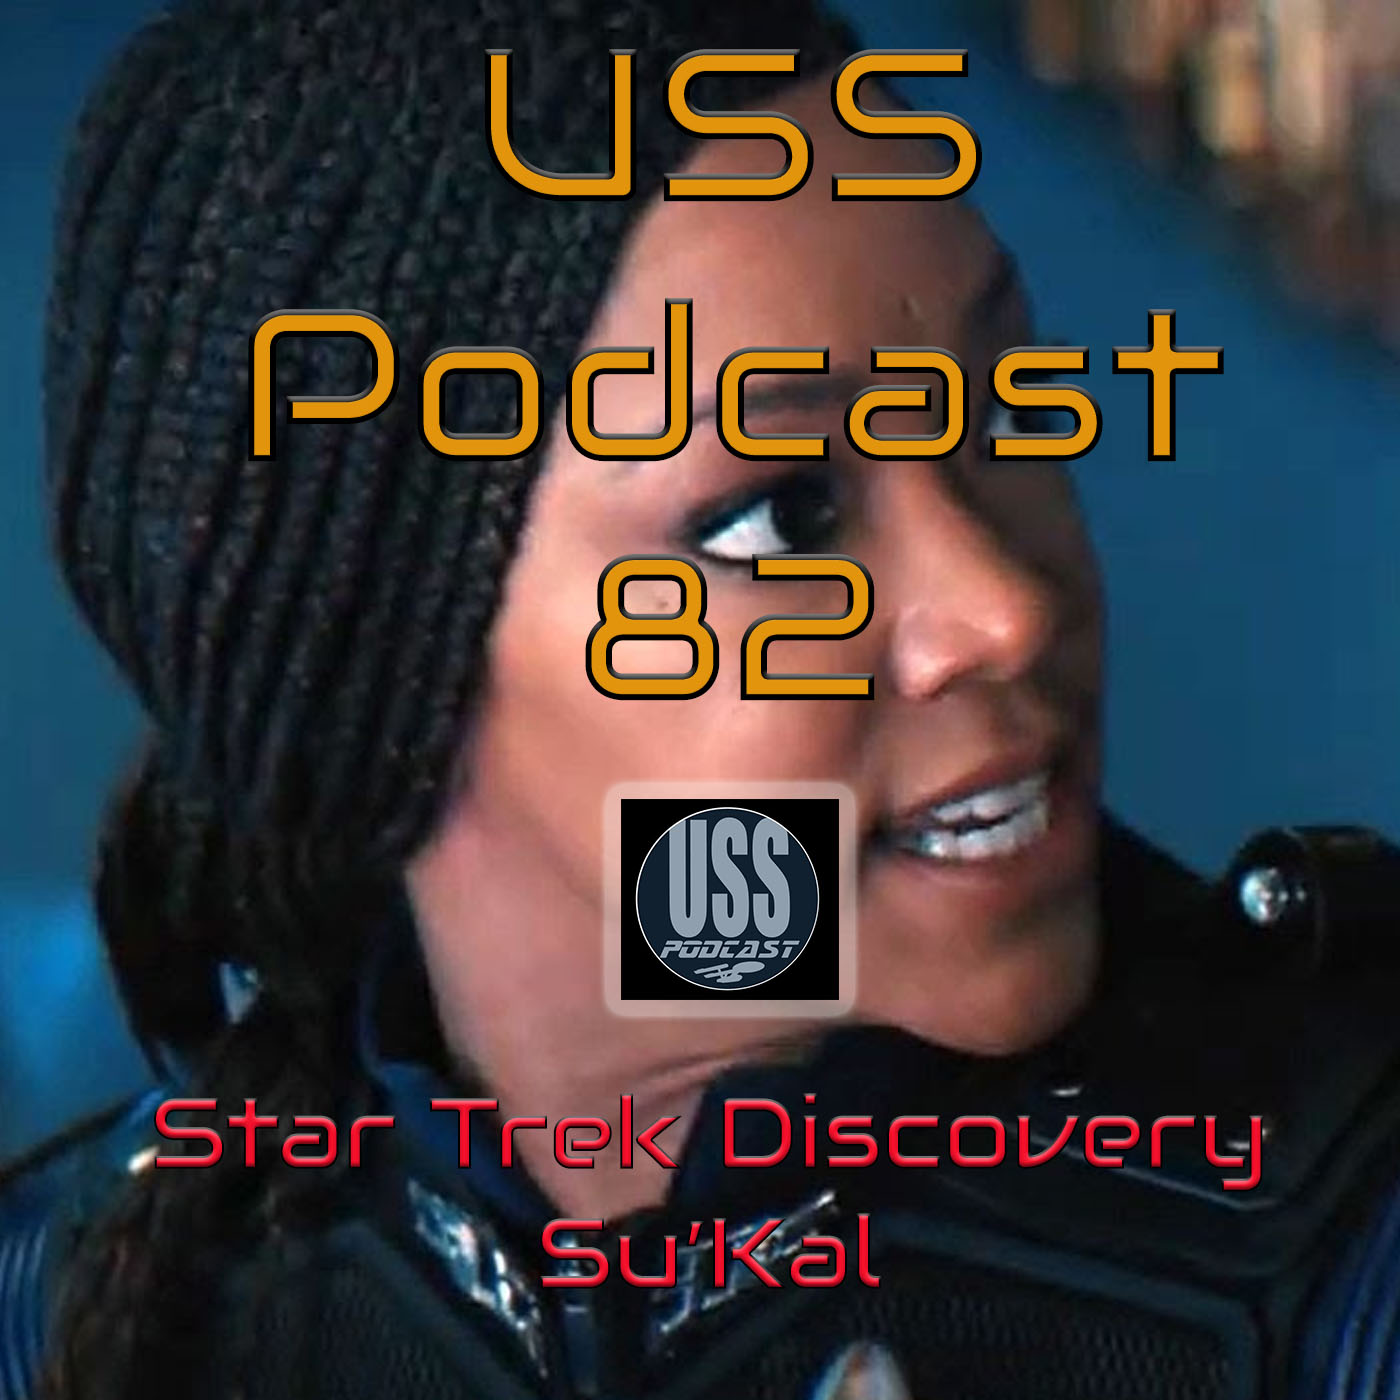 Star Trek Discovery 3×11 SuKal USS Podcast 82